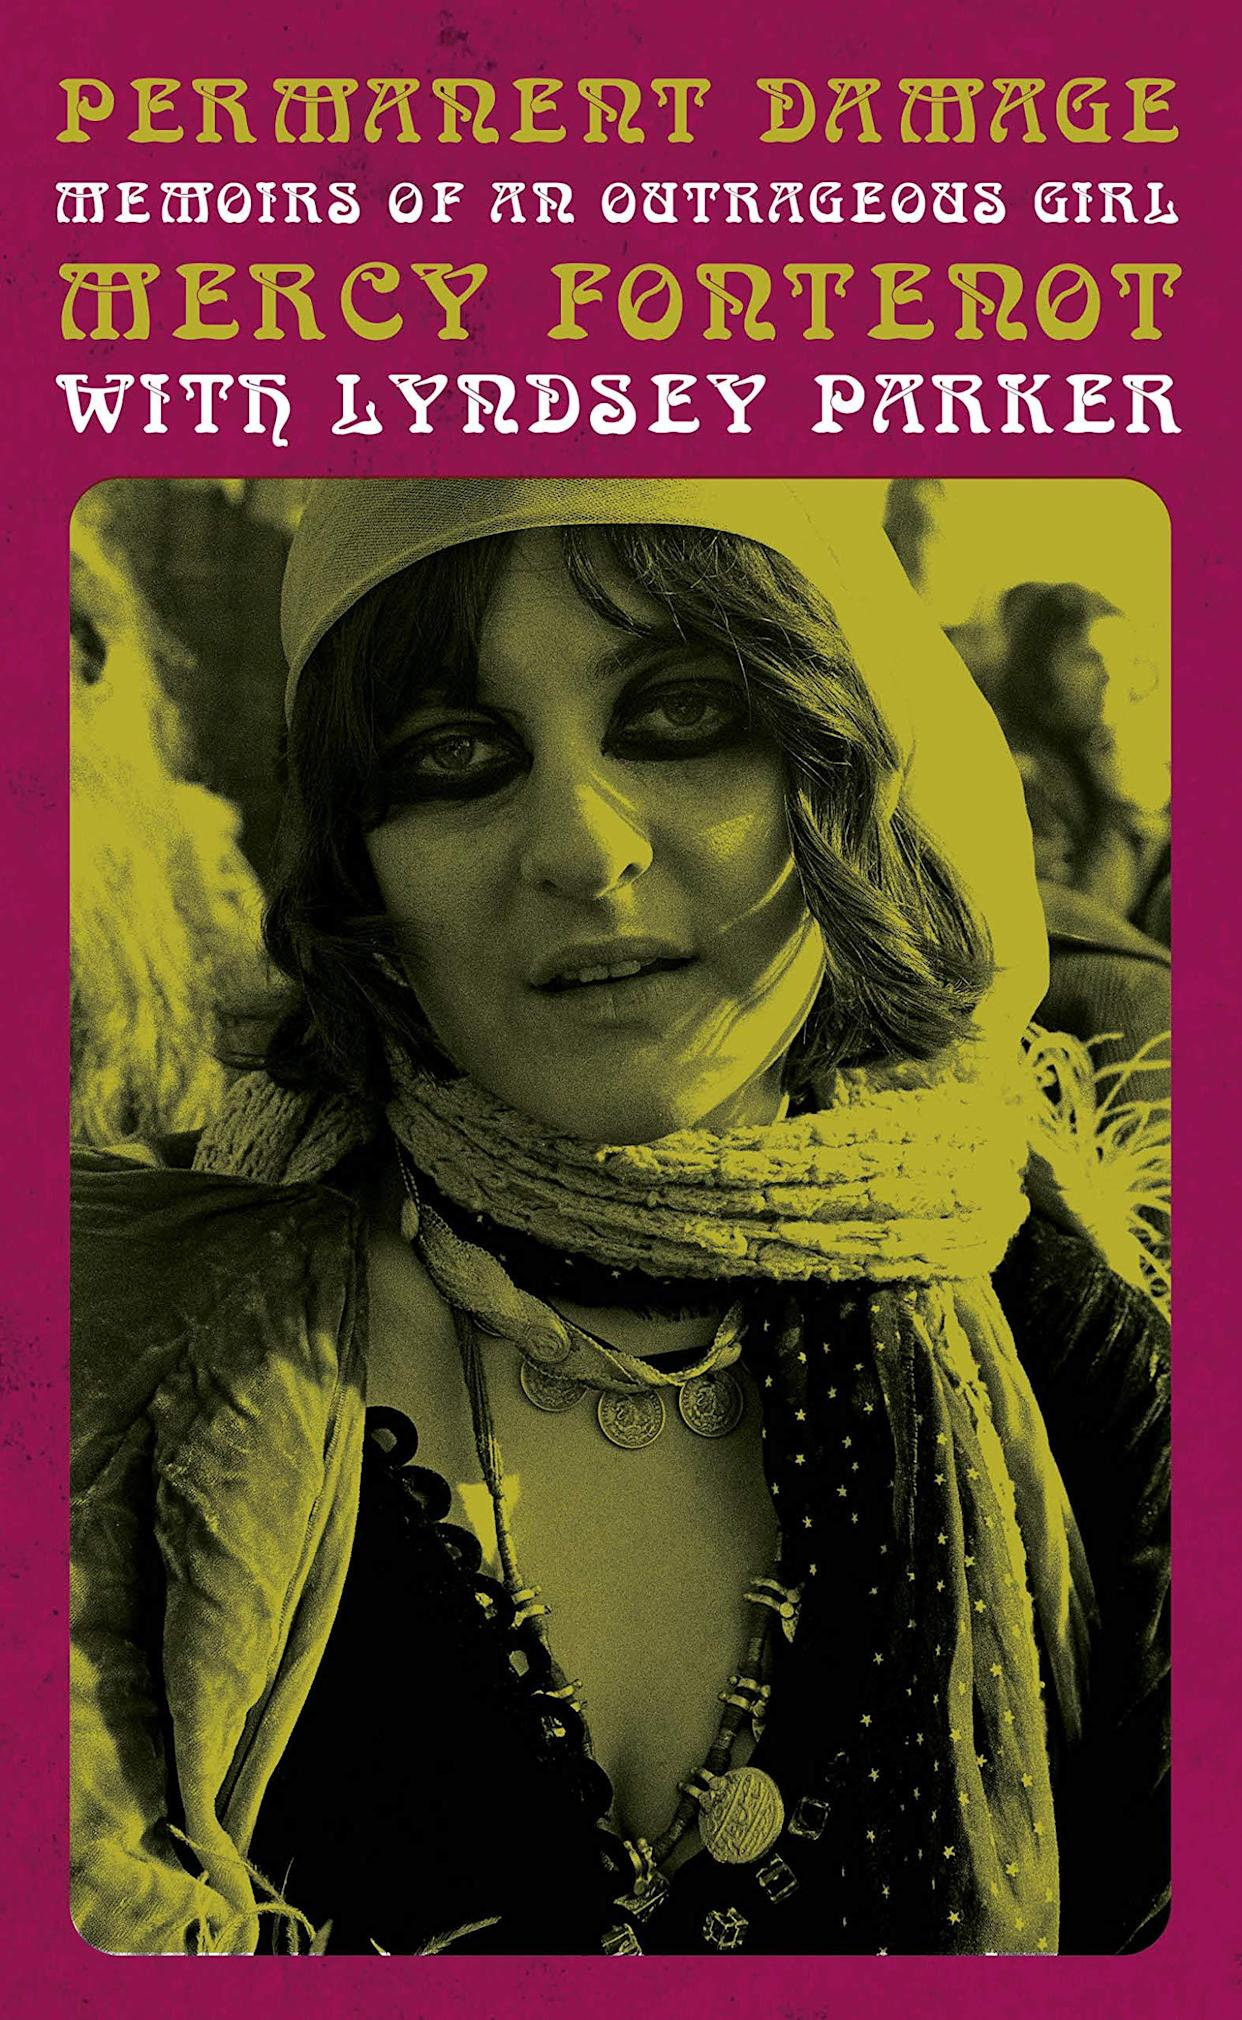 The cover of 'Permanent Damage: Memoirs of an Outrageous Girl' by Mercy Fontenot with Lyndsey Parker. (Photo: Rare Bird Books/Robert Altman)